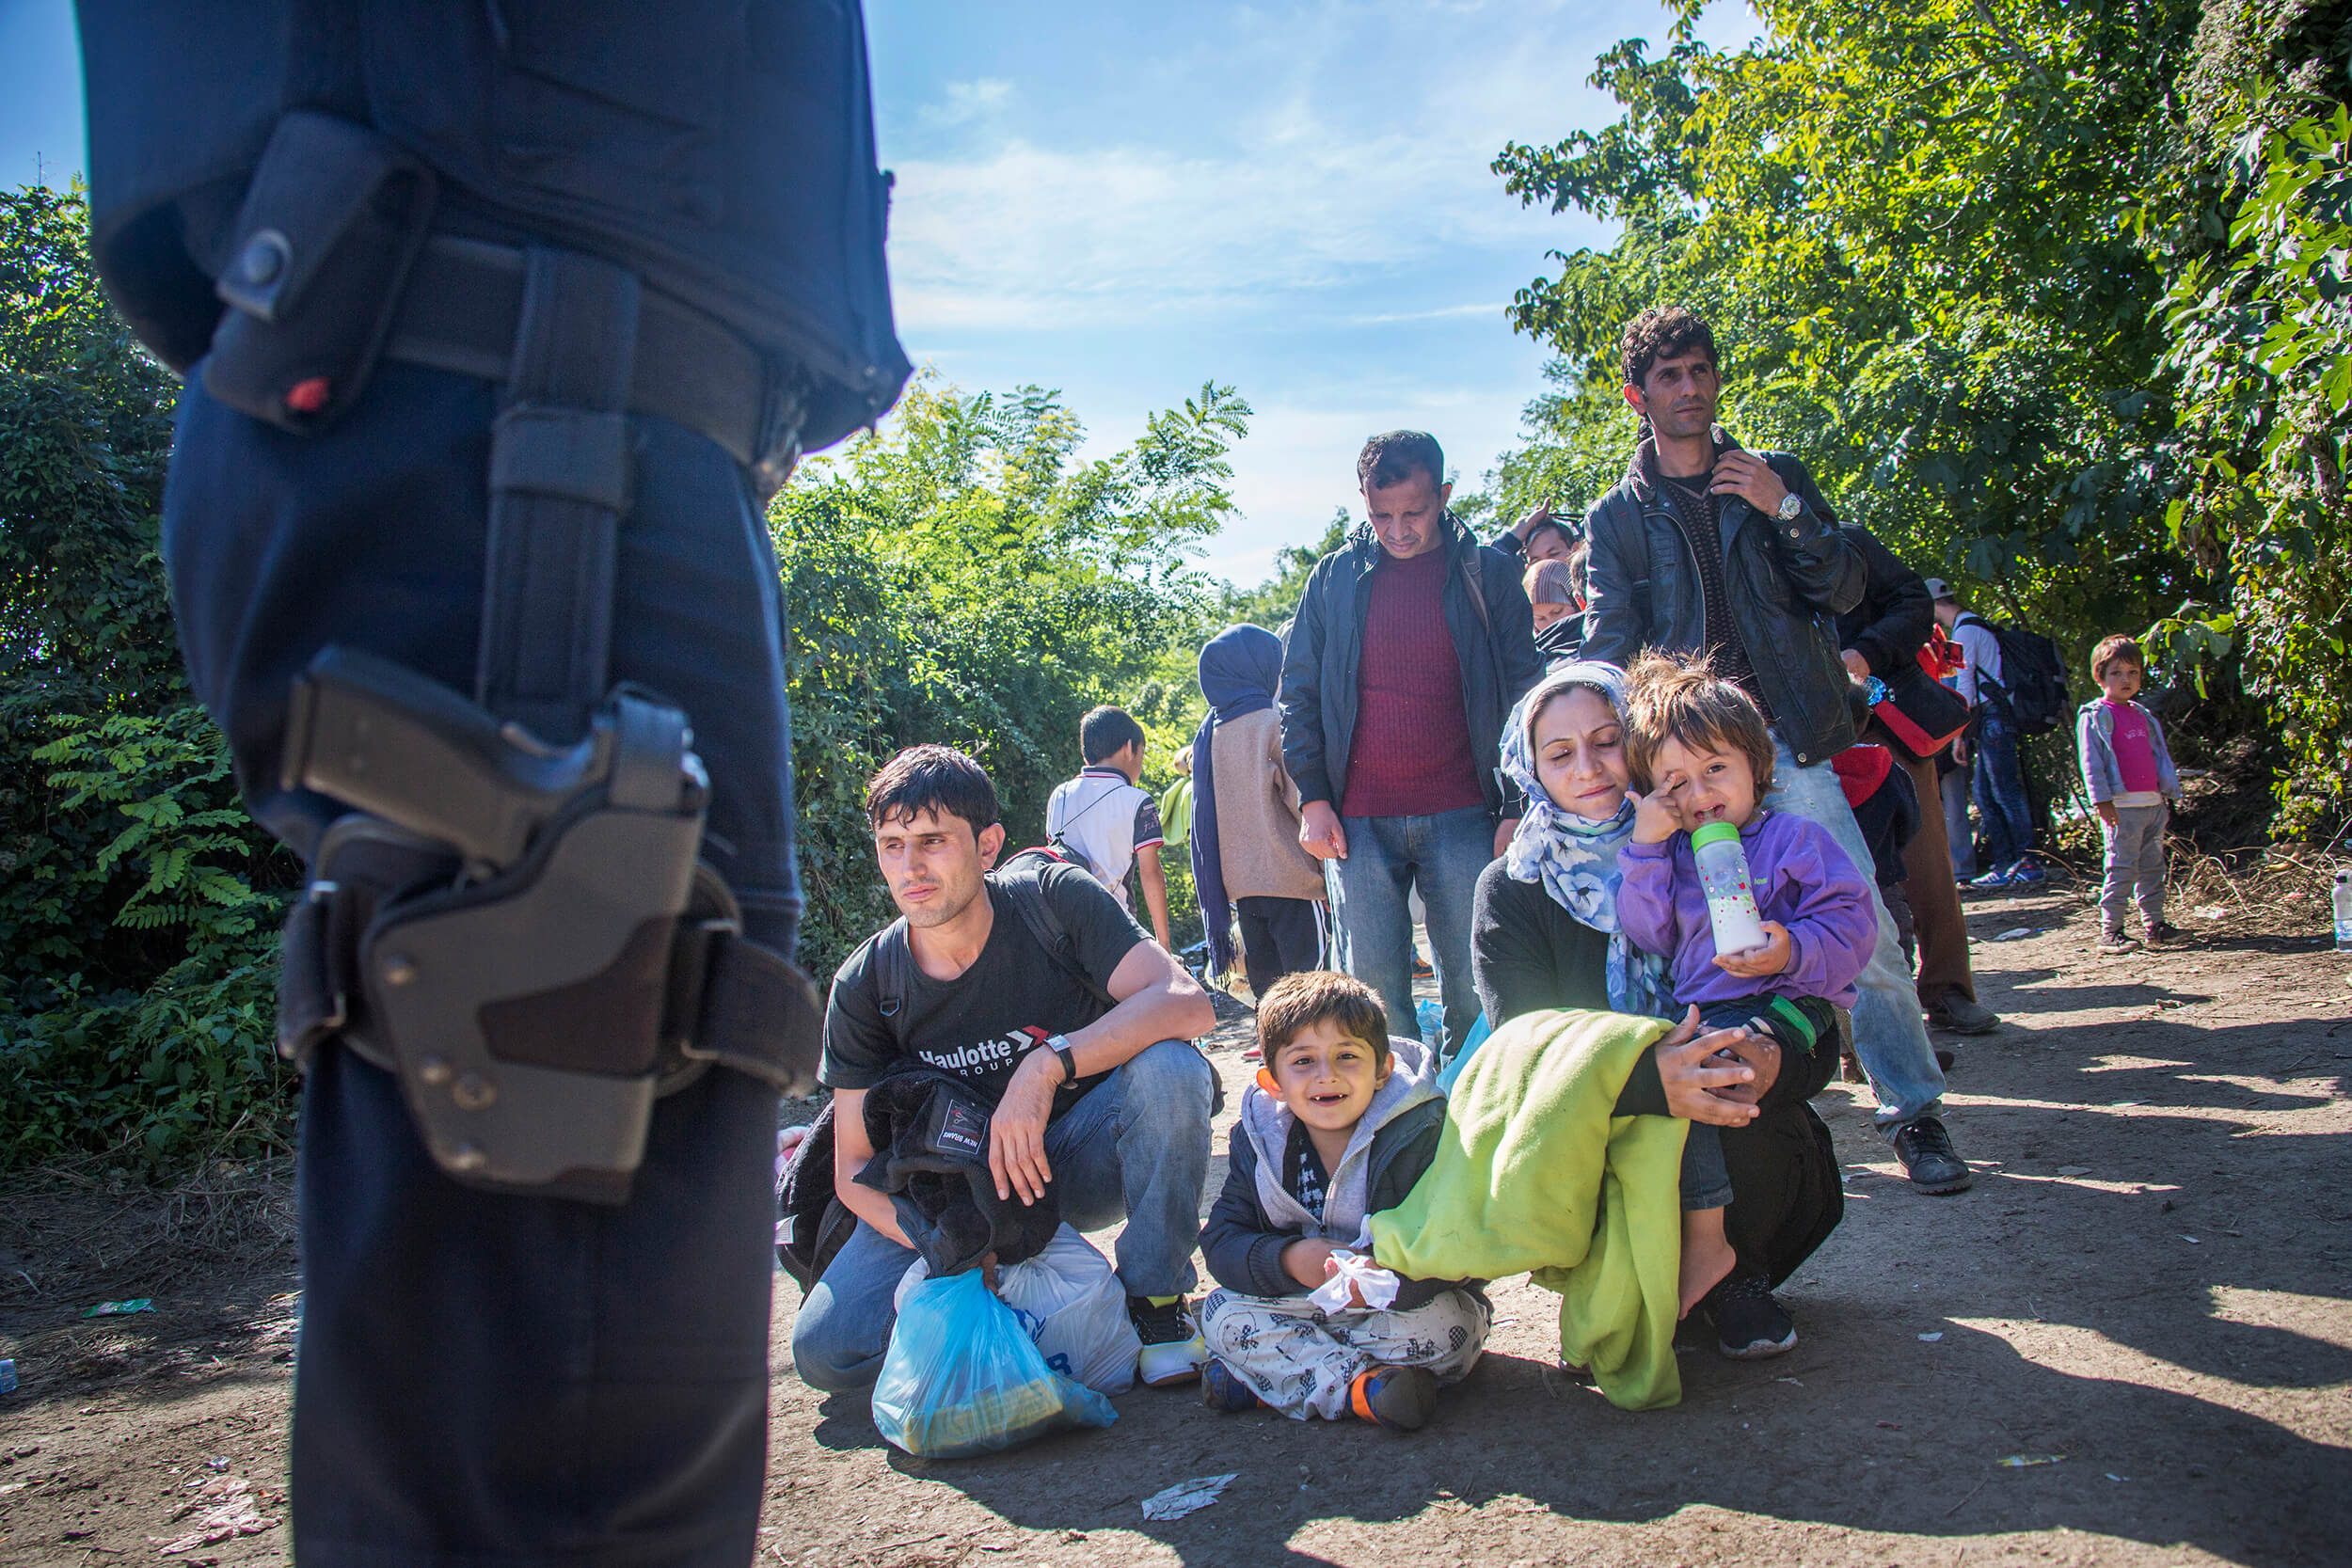 Serbia. October 2015. Mal and Mitra Jelali, från Afghanistan, with their two children, 9 month and 3 years, waiting at the Serbian/Croatian border.